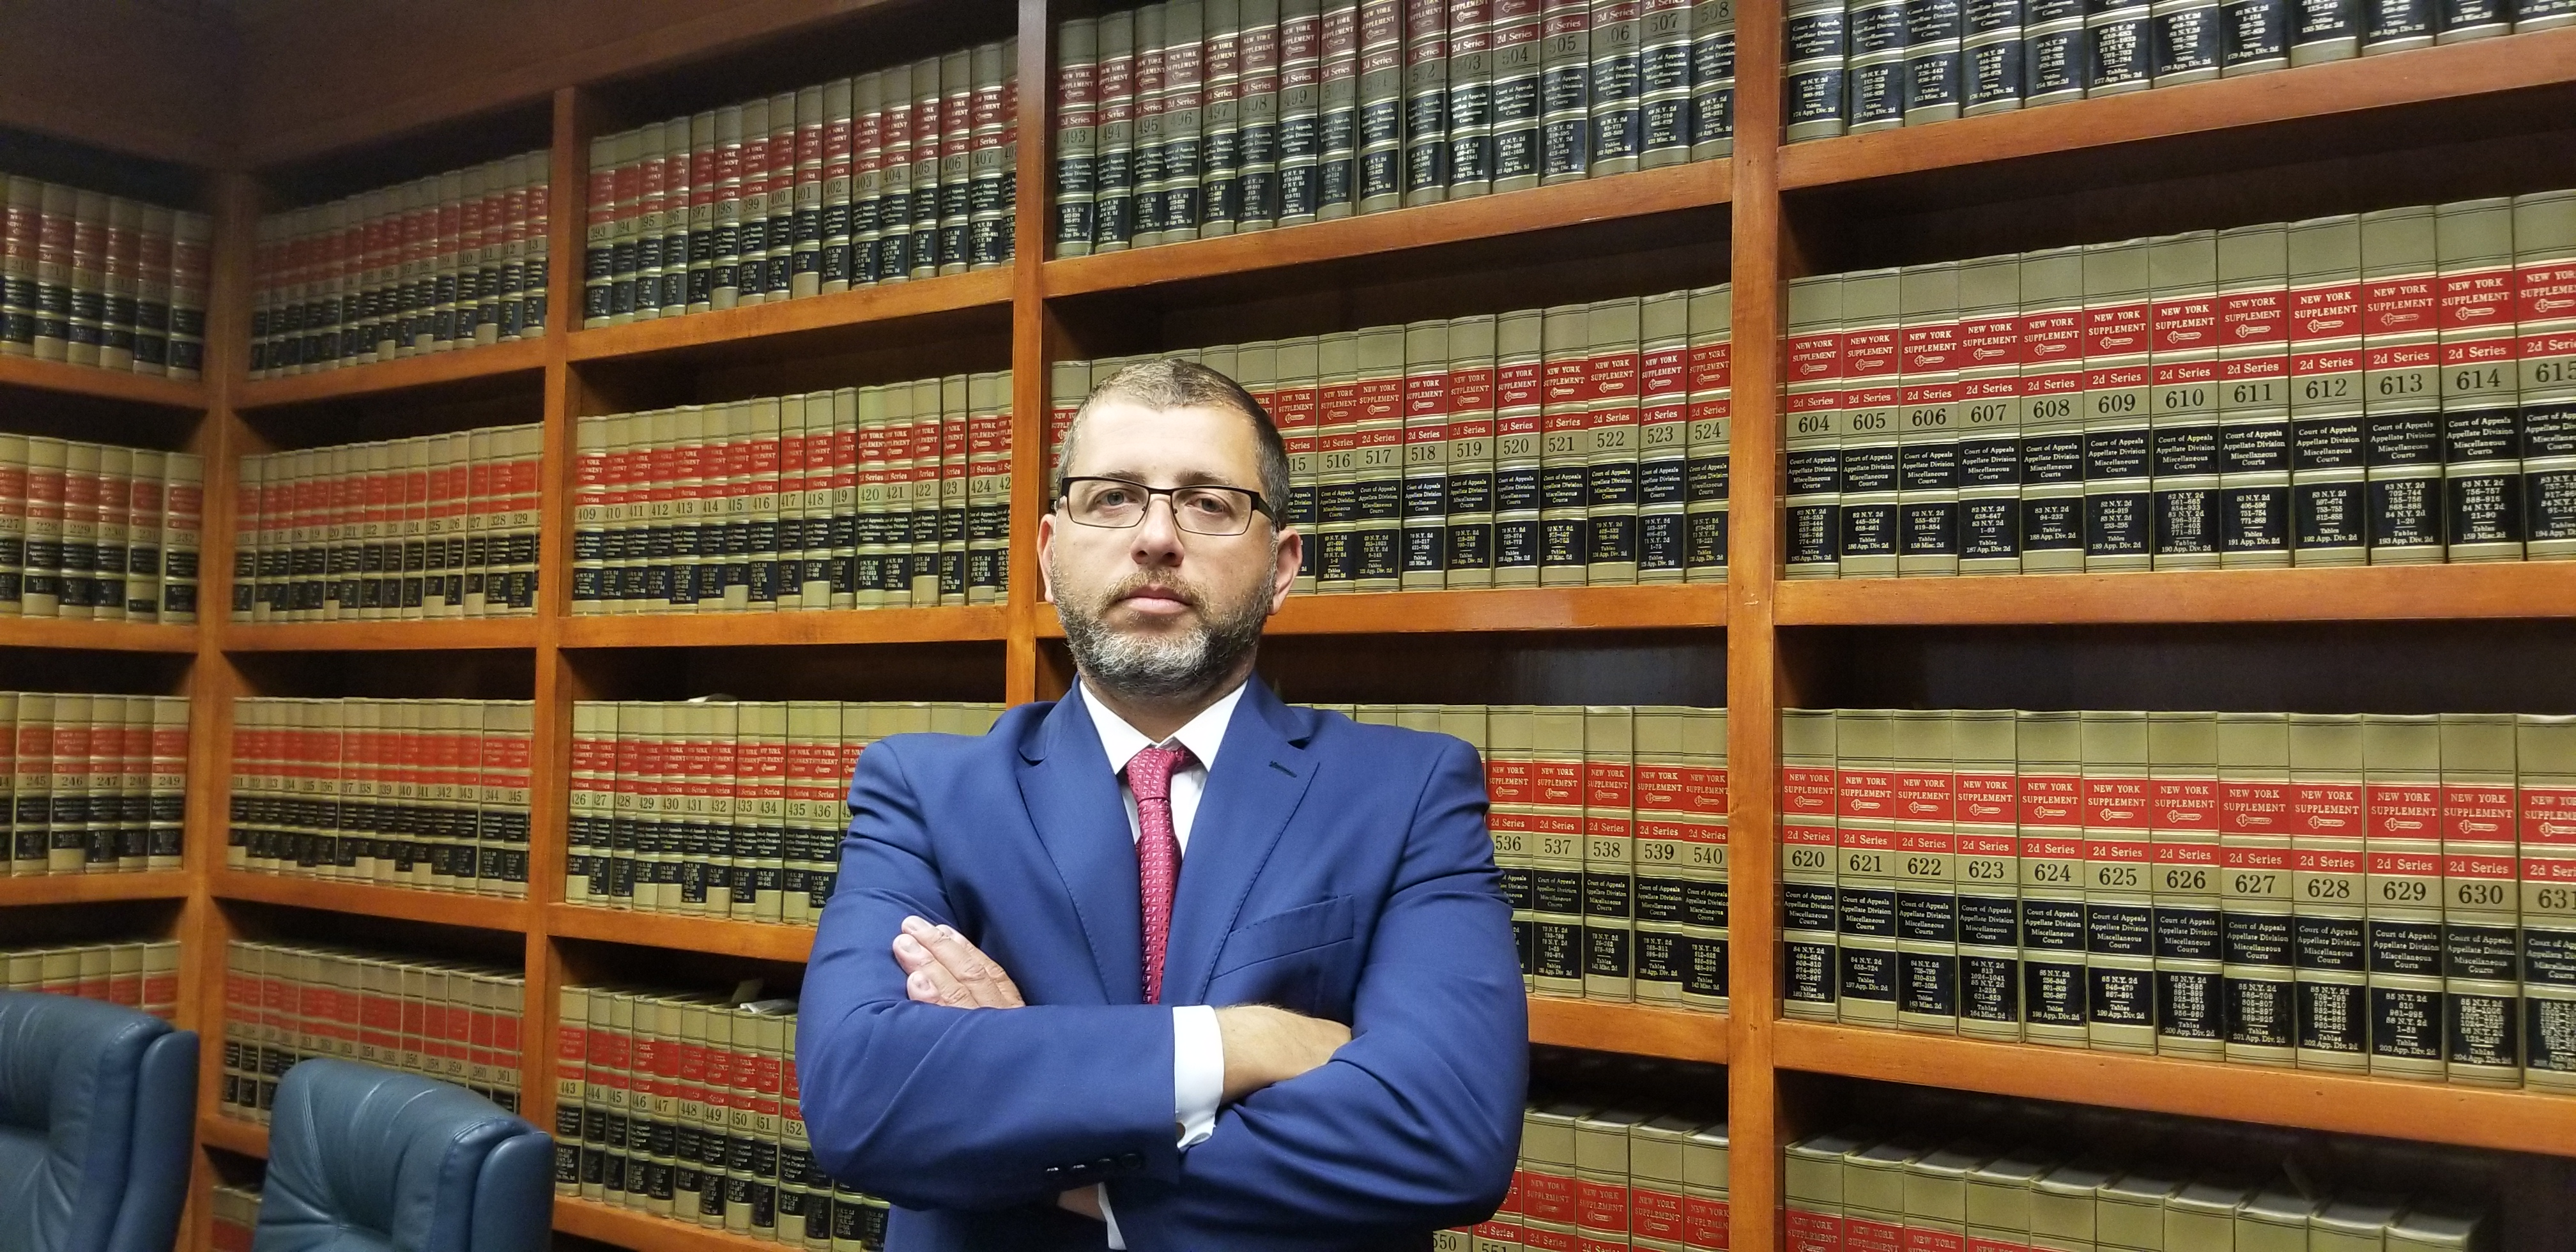 Russian speaking criminal defense attorney in new york city